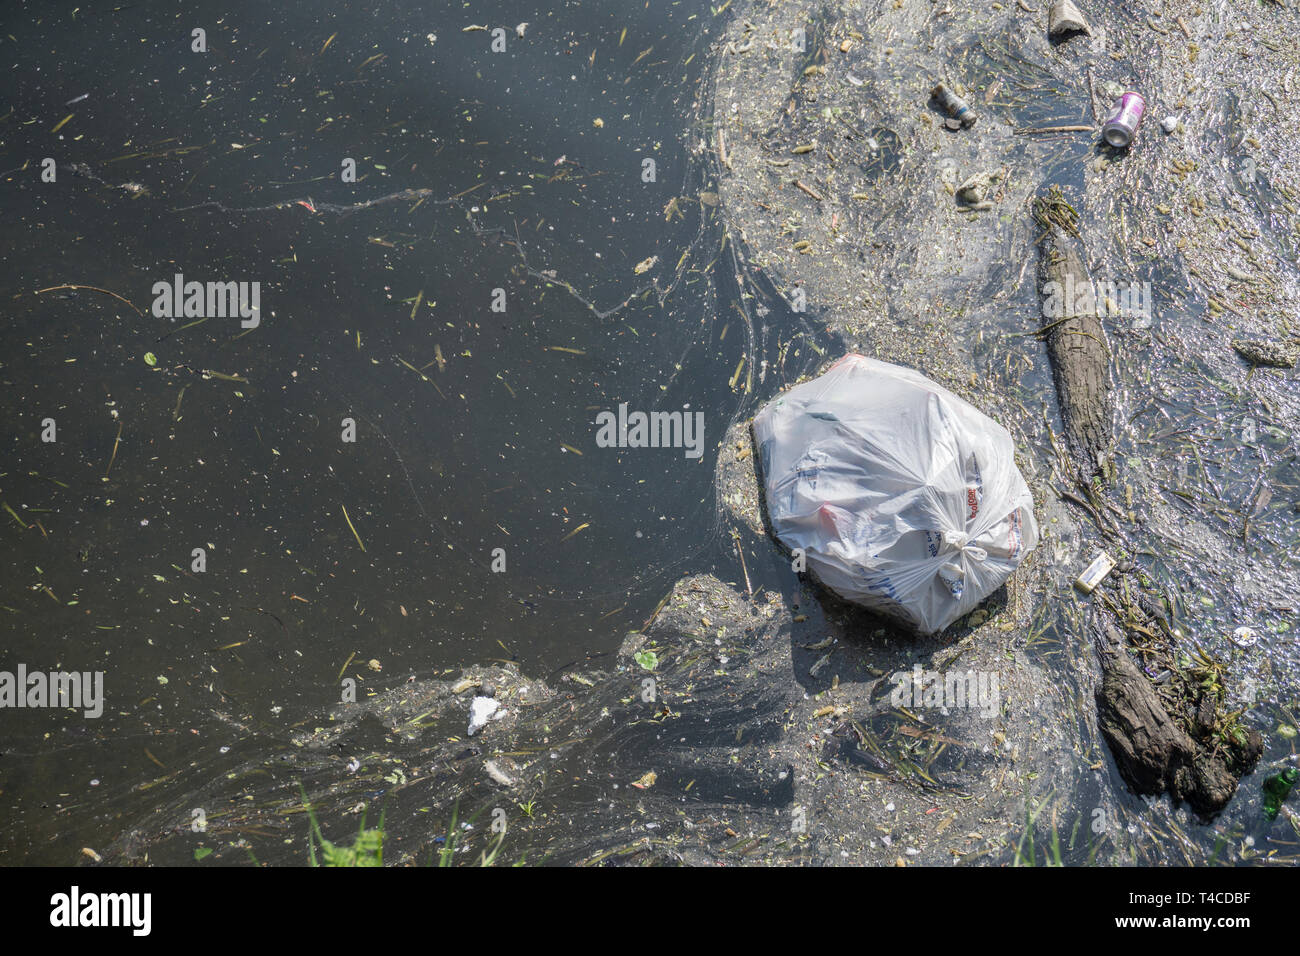 Plastic waste polluting into nature. rubbish bag floating on water - Stock Image